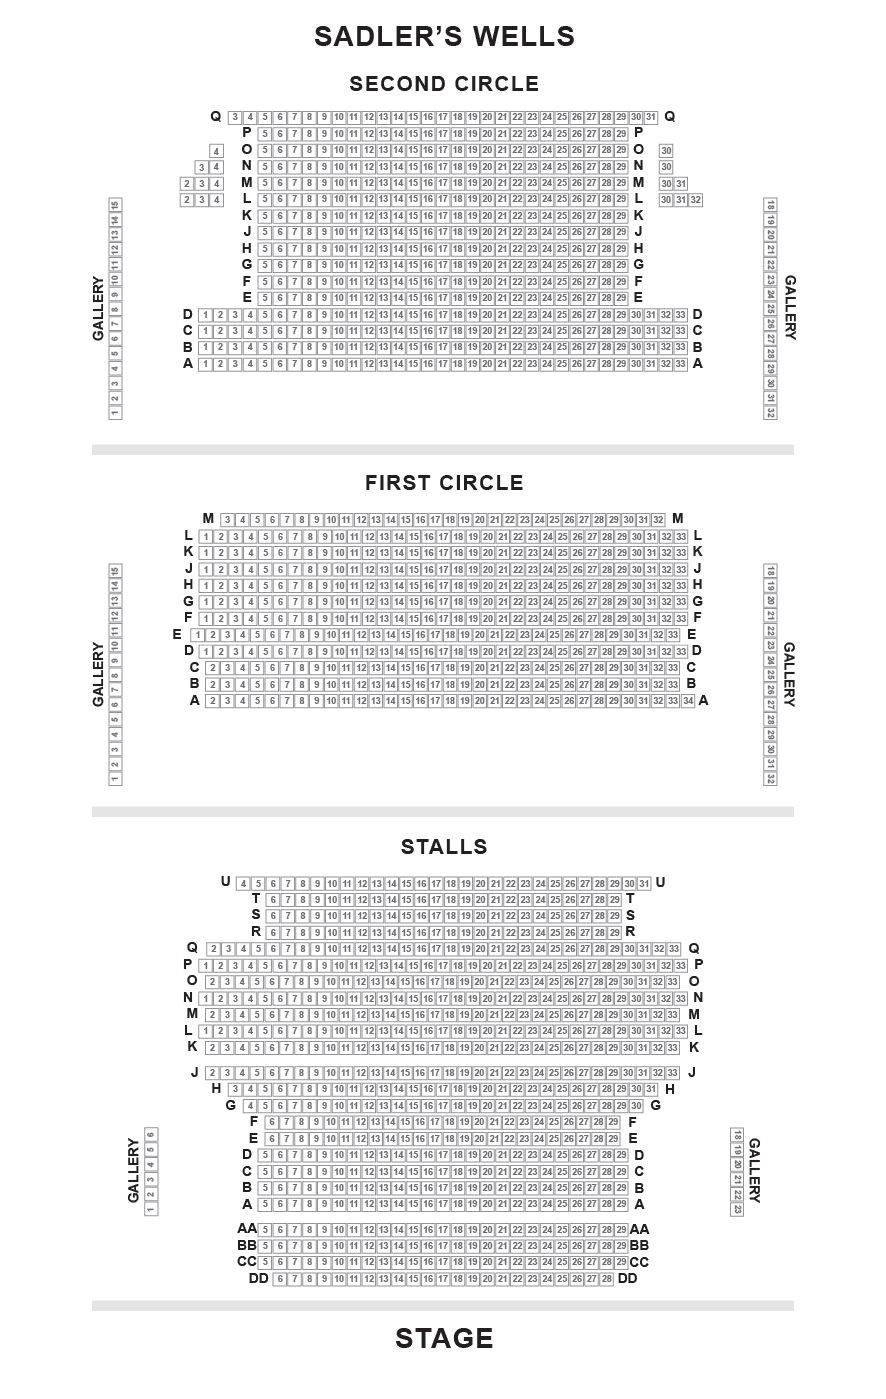 Sadler's Wells Theatre Seating Plan